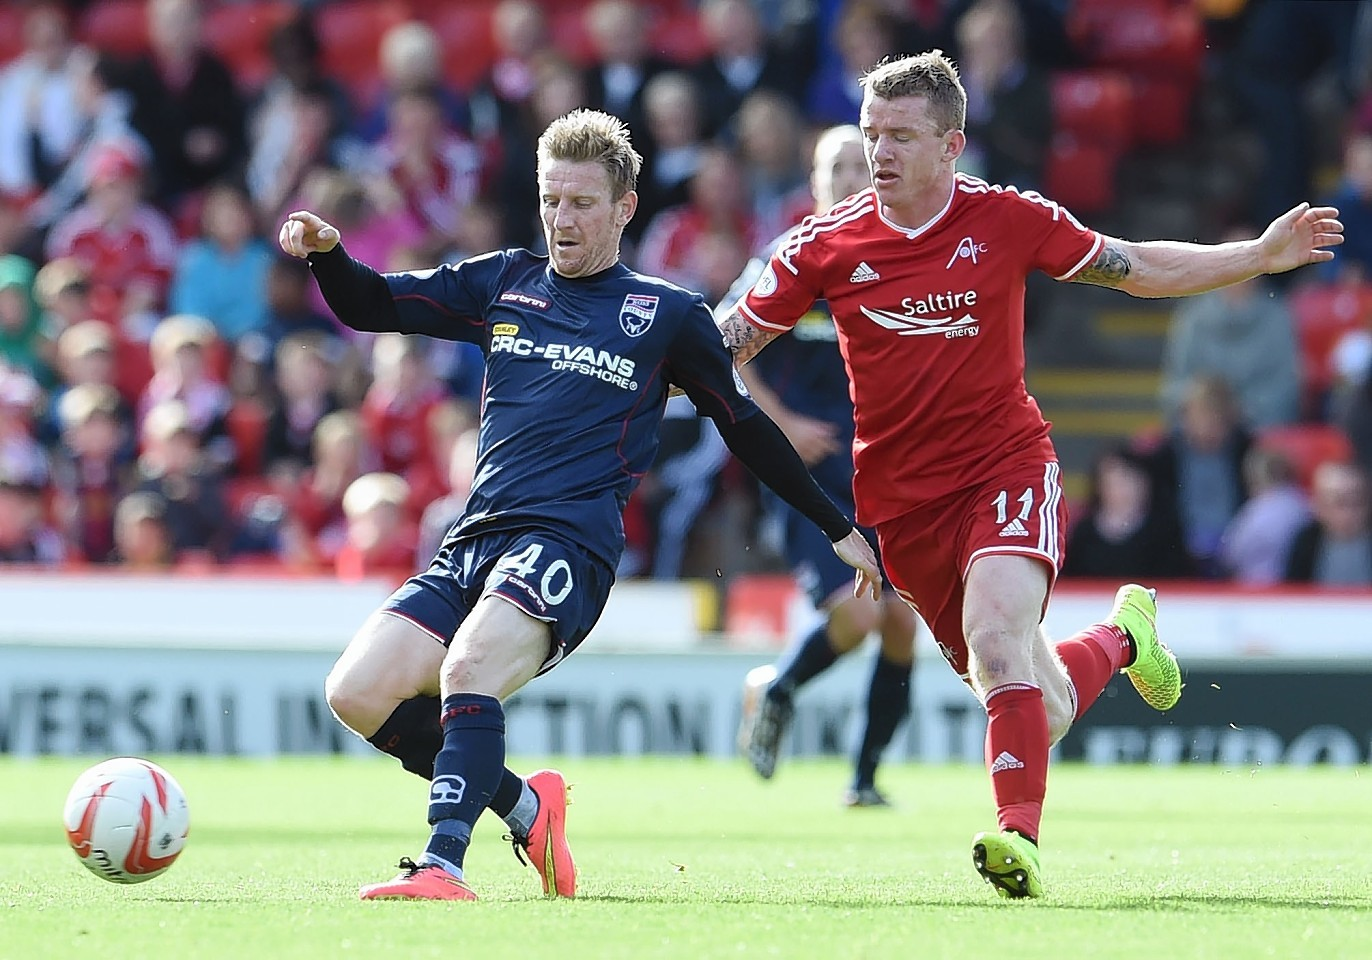 Gardyne is currently in his third spell with the Dingwall club